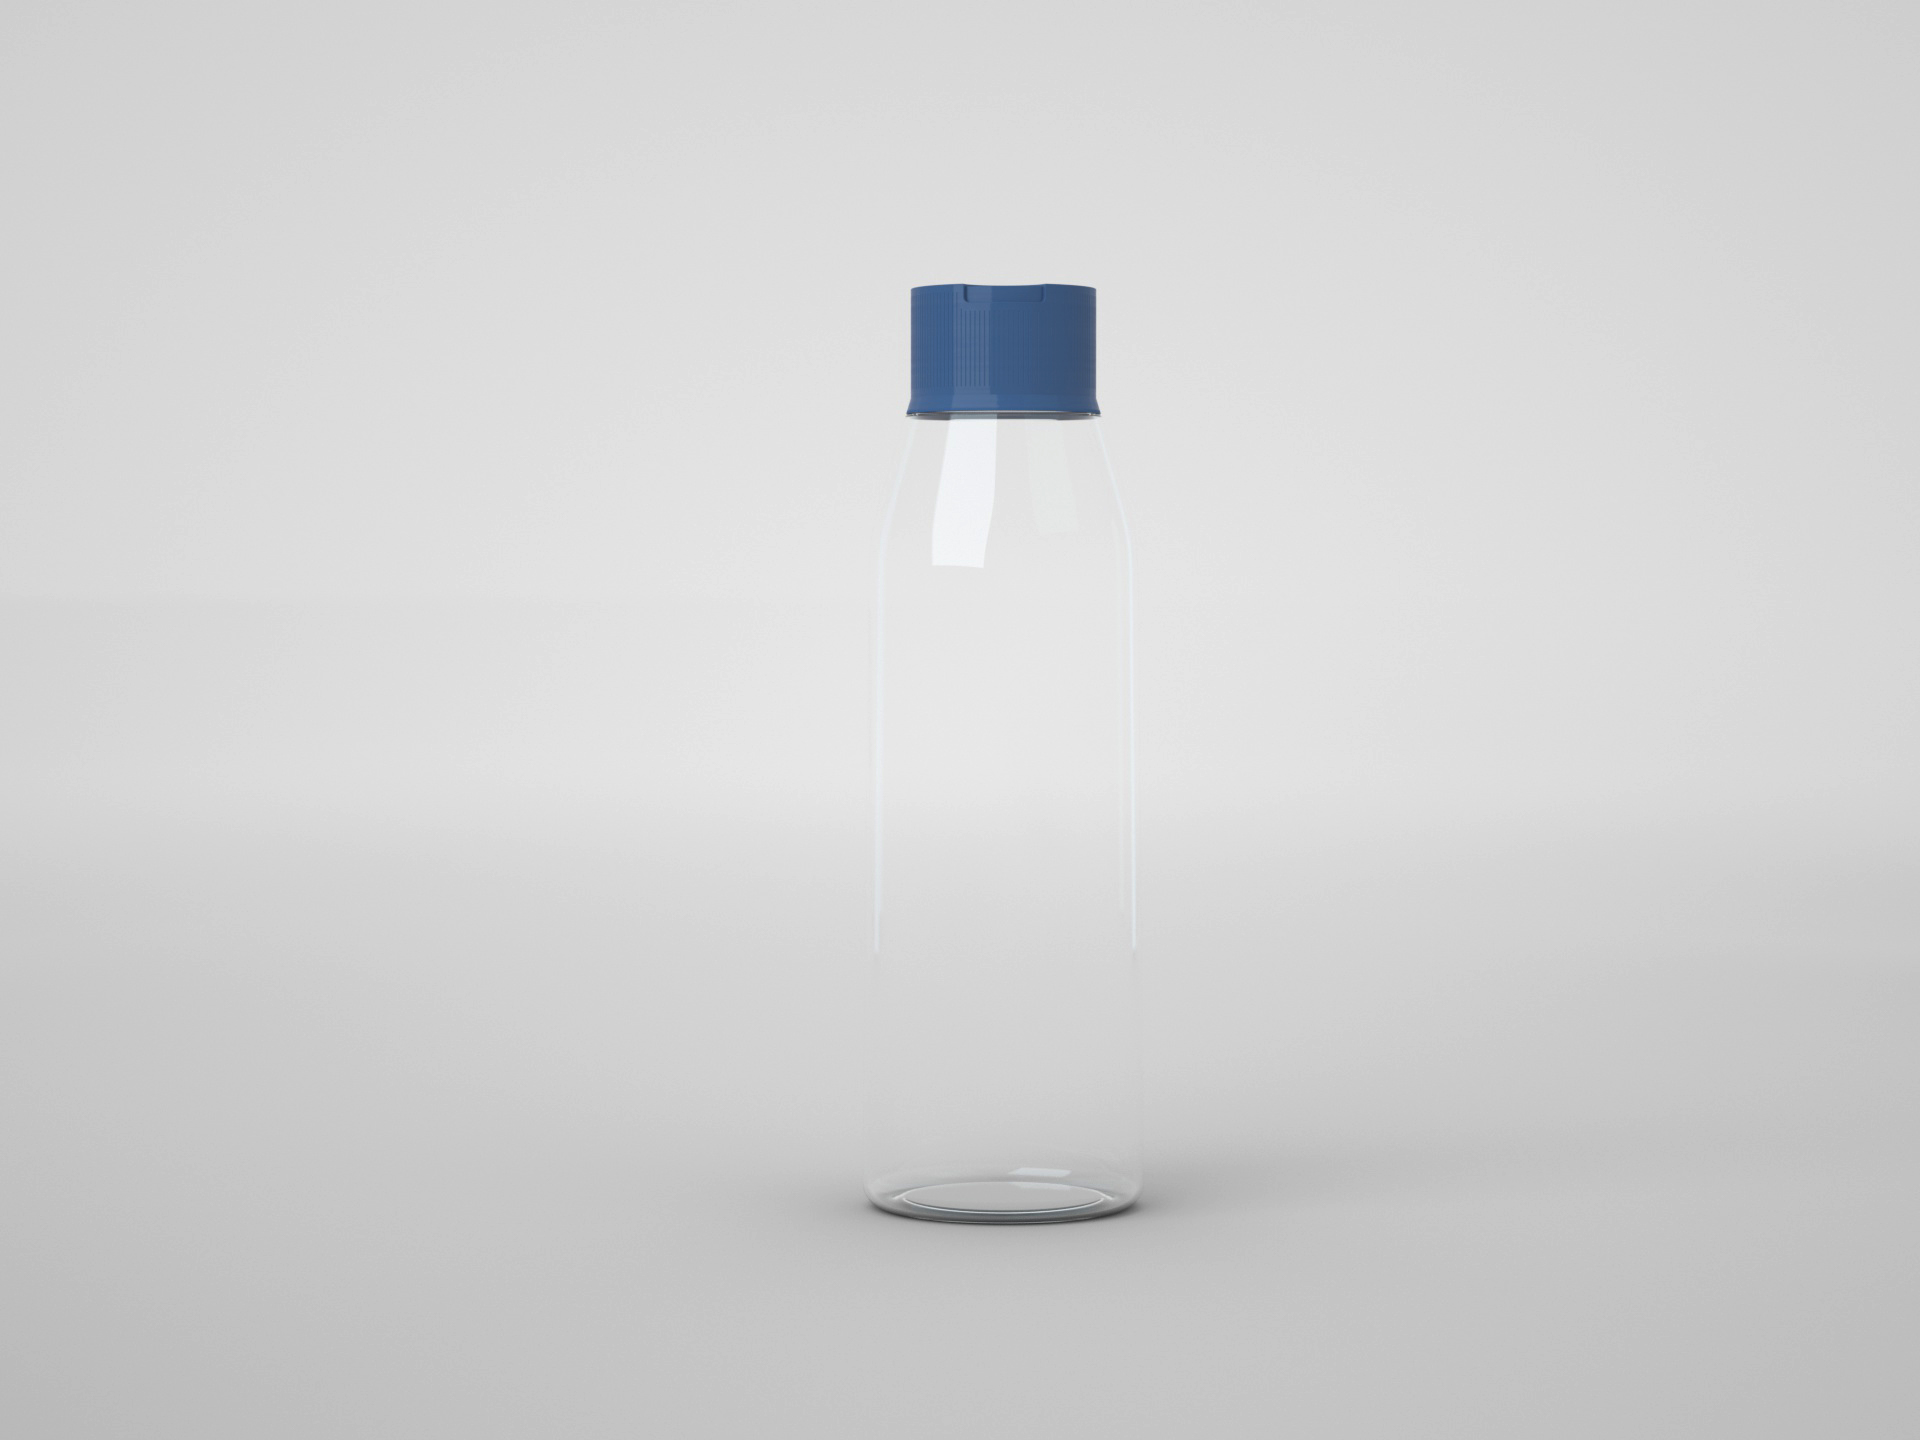 Re-fillable_Bottle_Rhino_PSD_v001_01.jpg